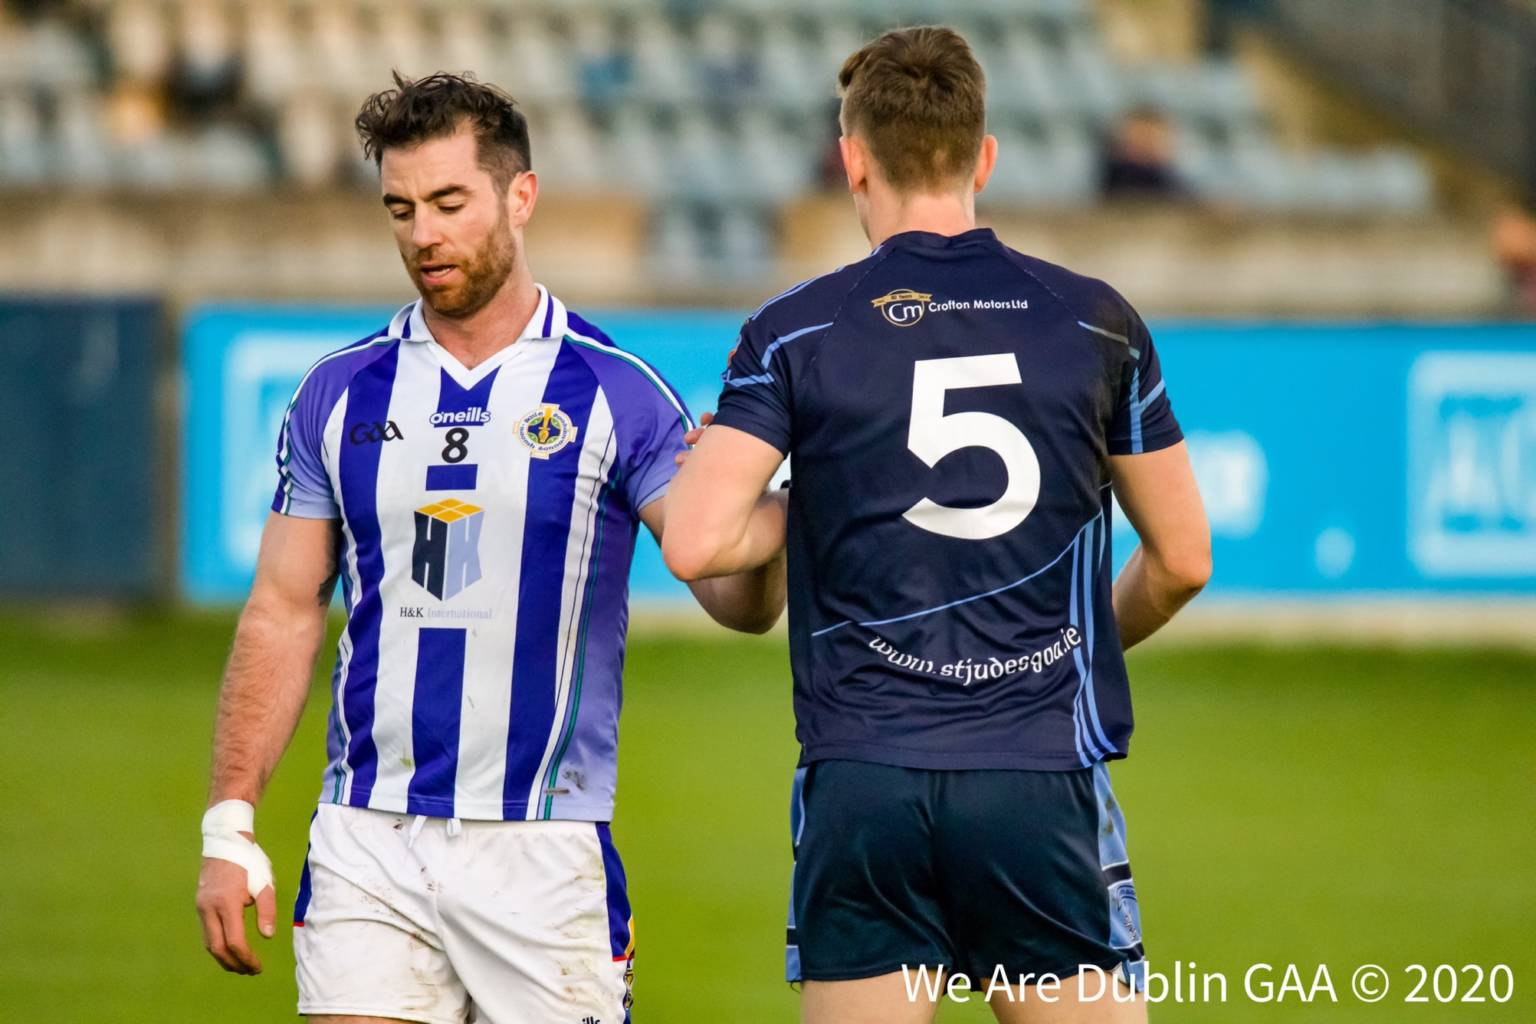 A Ballyboden St Endas player and St Judes player during a club championship game, the Dublin GAA county board have unveiled their revised games programme for the 2020 Dublin club championships